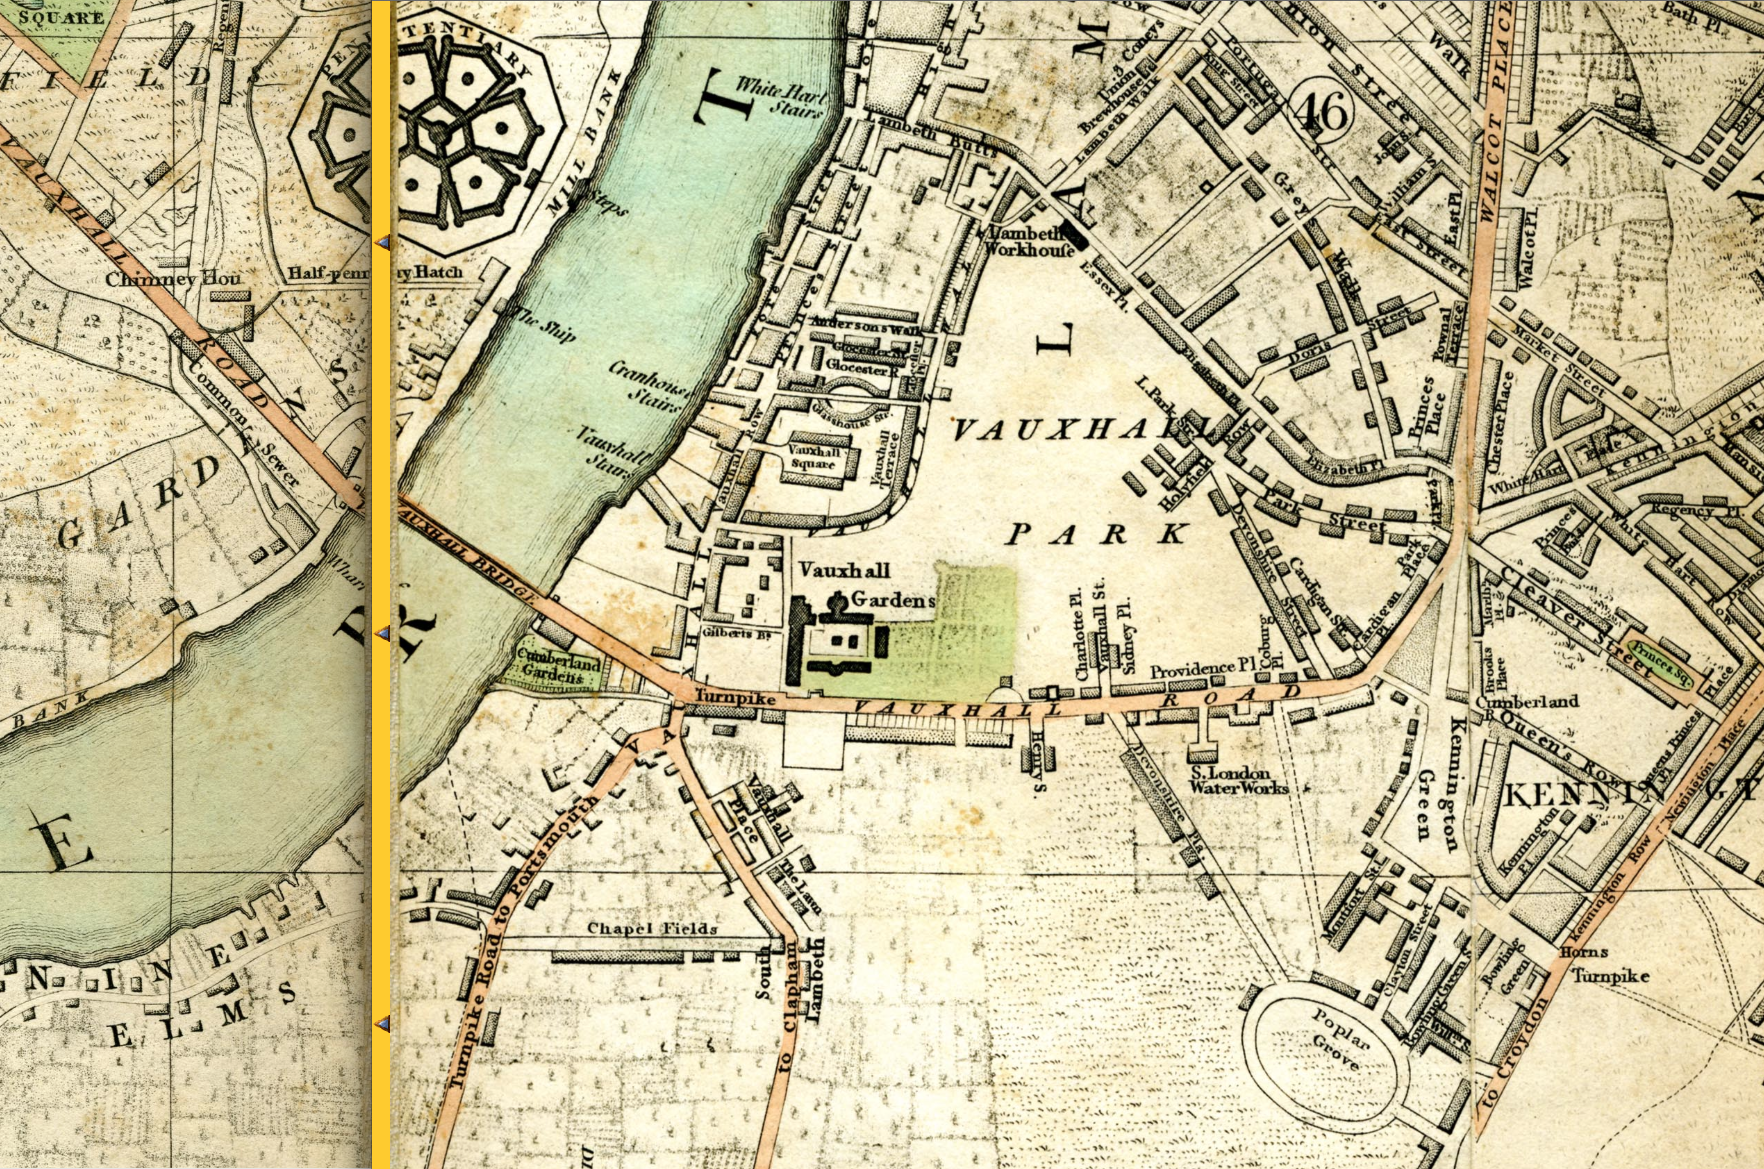 Vauxhall Kennington the Oval Maps – Map of London by Area